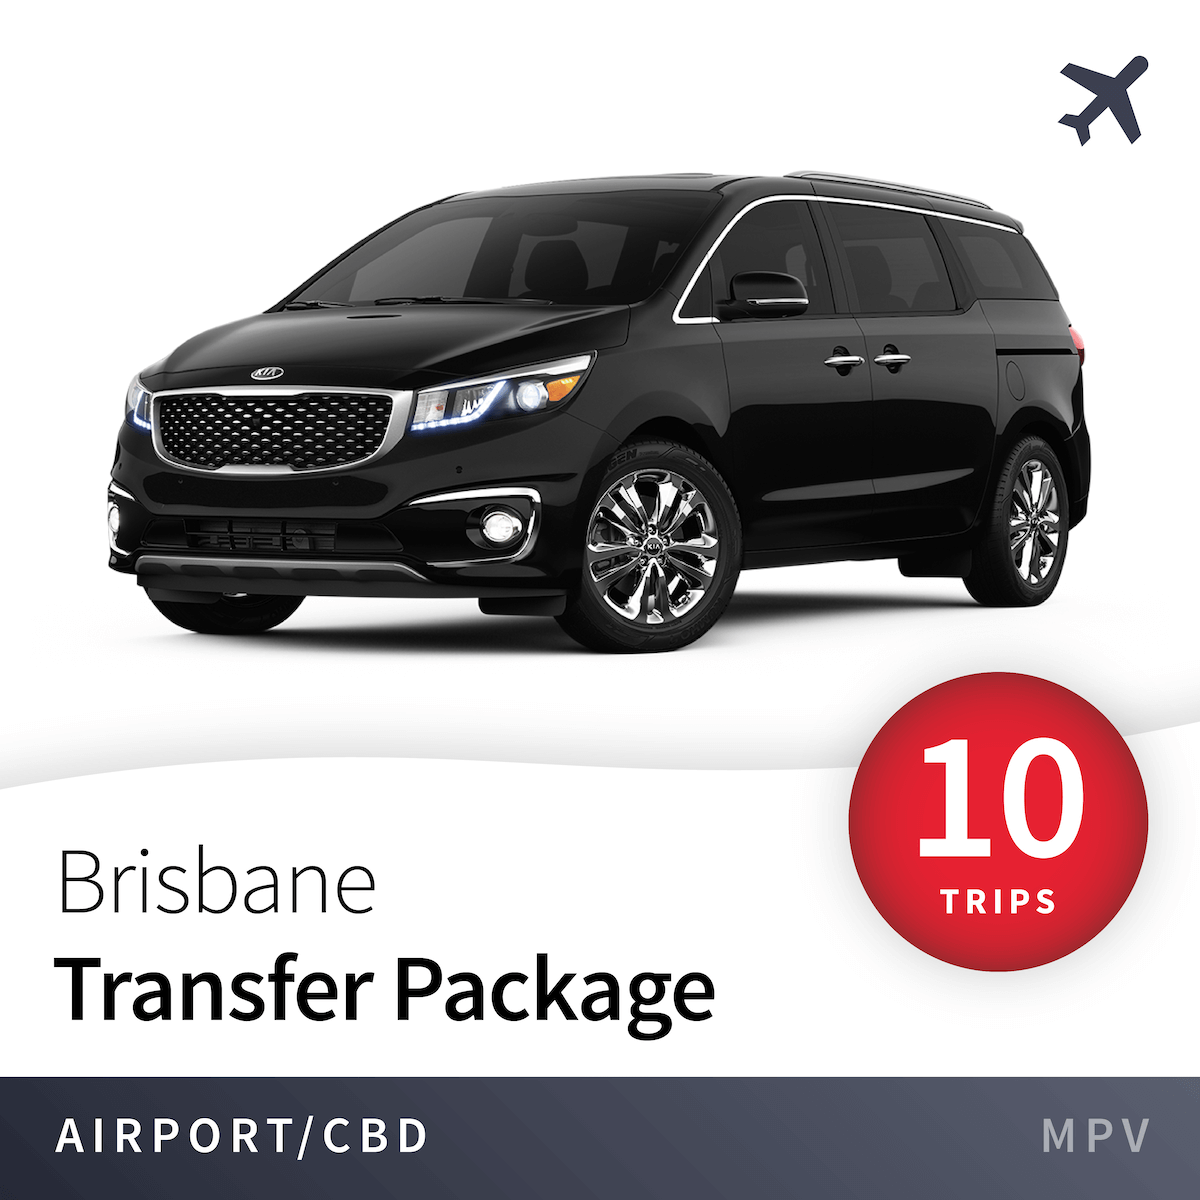 Brisbane Airport Transfer Package - MPV (10 Trips) 10